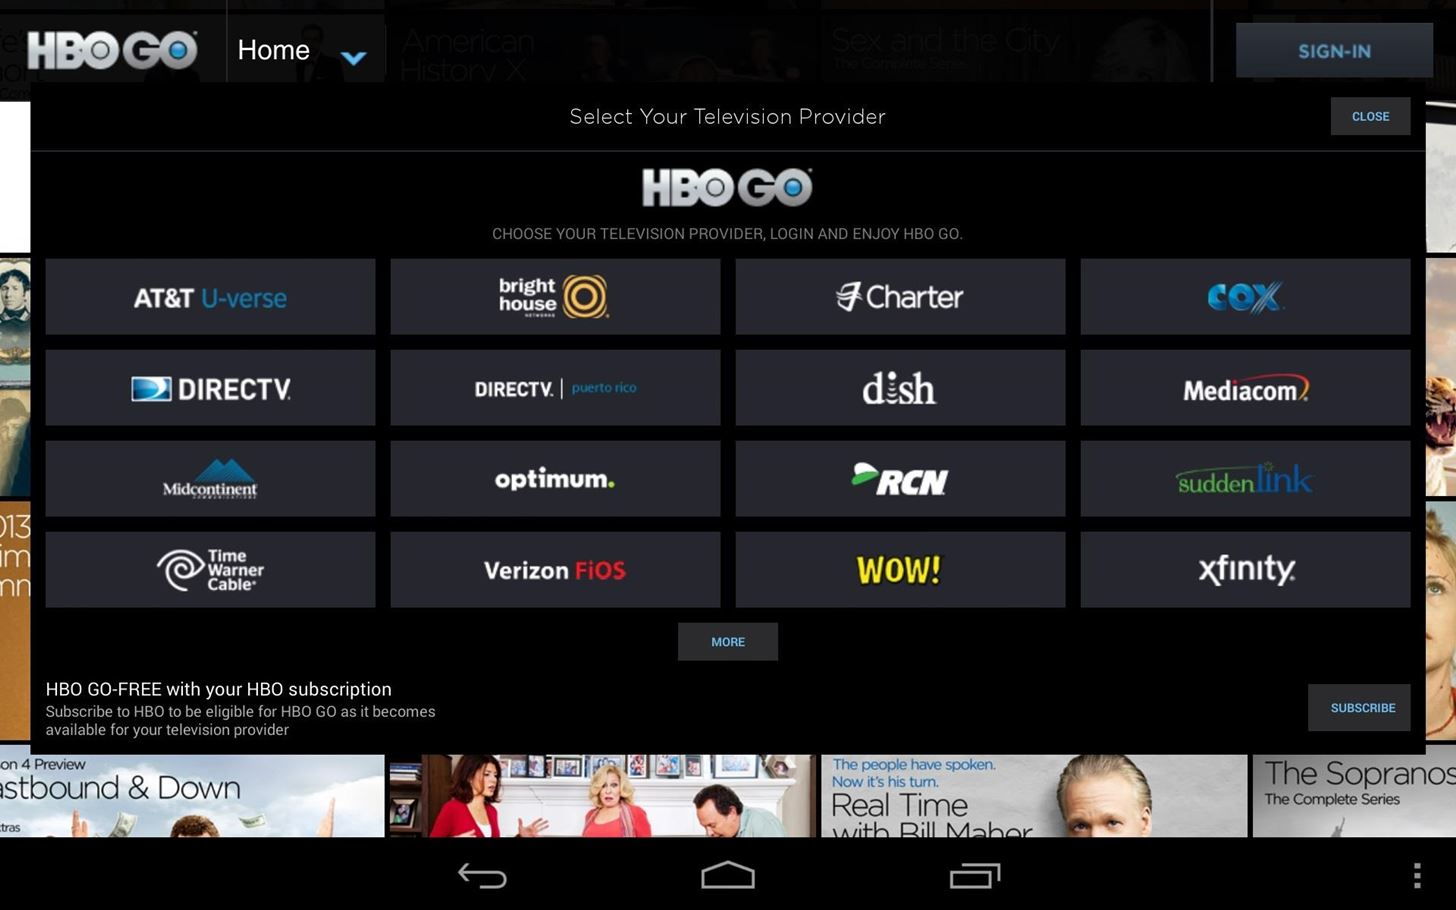 How to Install the HBO GO App on Your Nexus 7 Tablet (No Root Required)